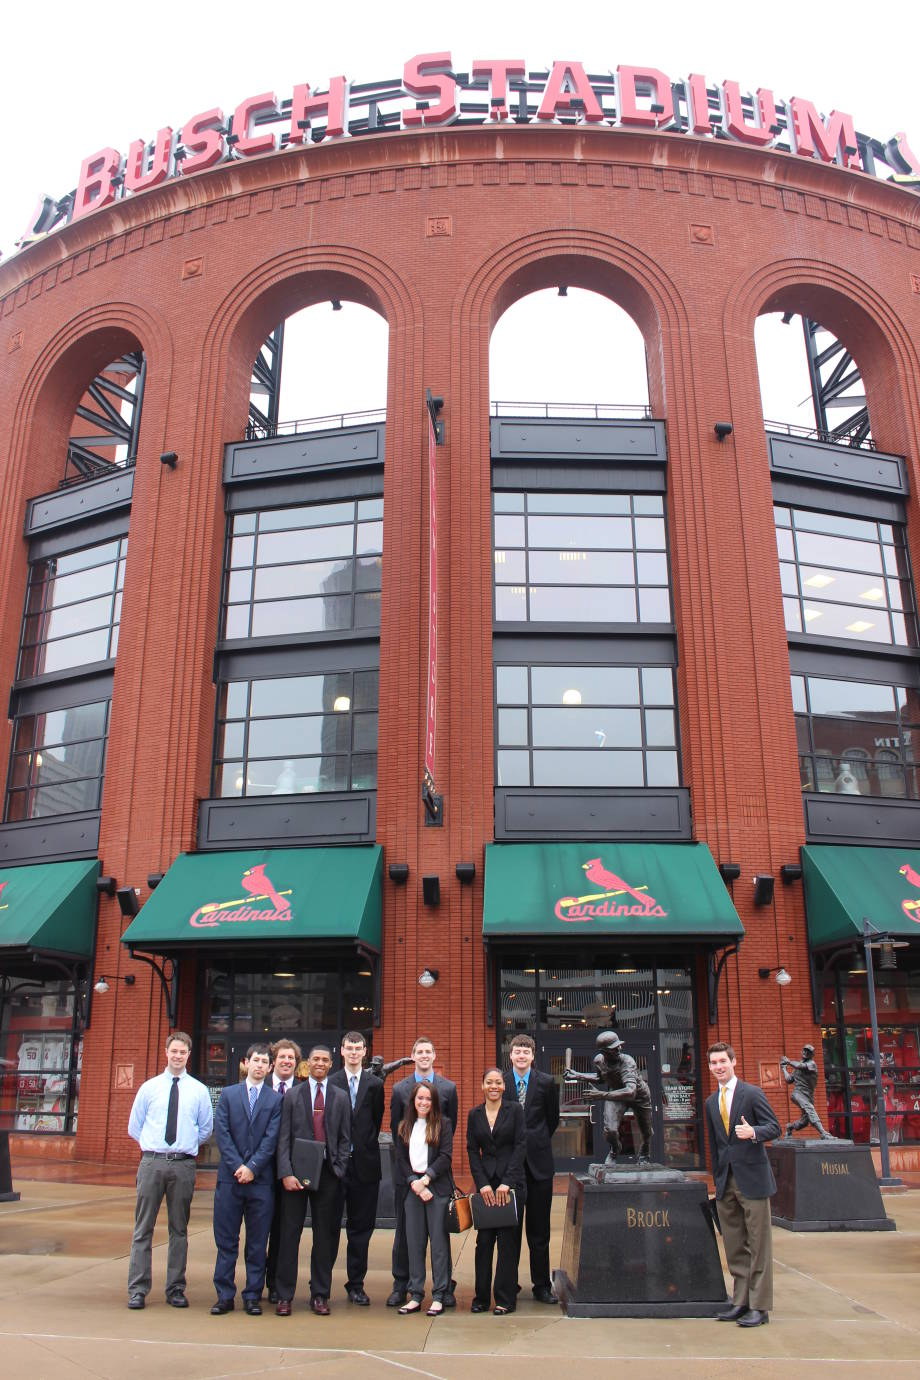 Students outside of Busch Stadium, home of the St. Louis Cardinals.